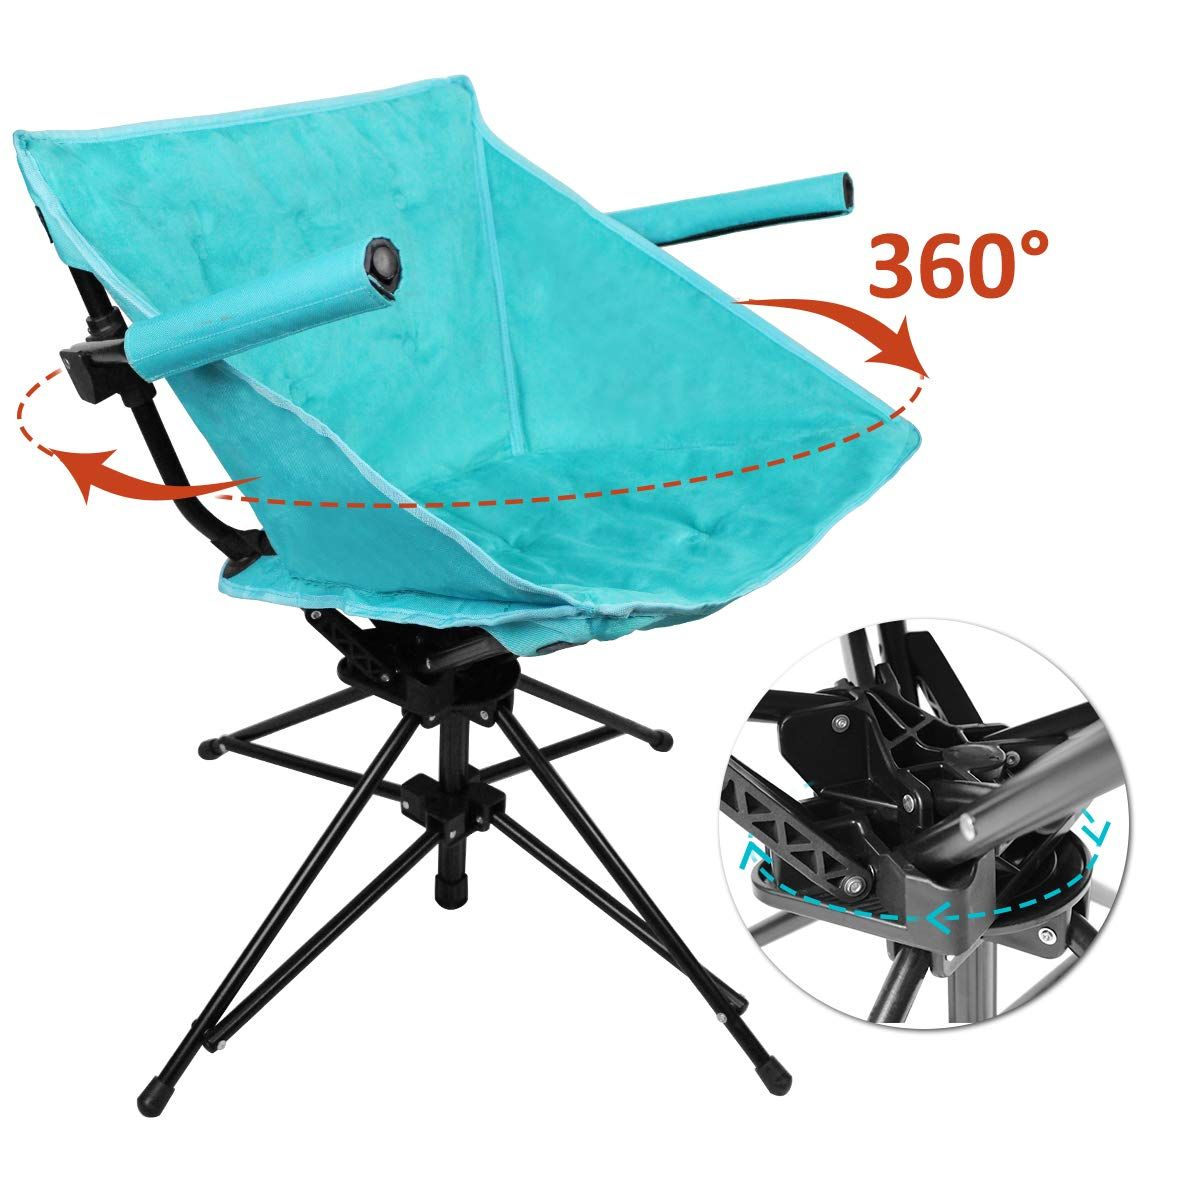 Zenree Folding Camping Hunting Chairs Outdoor, Portable